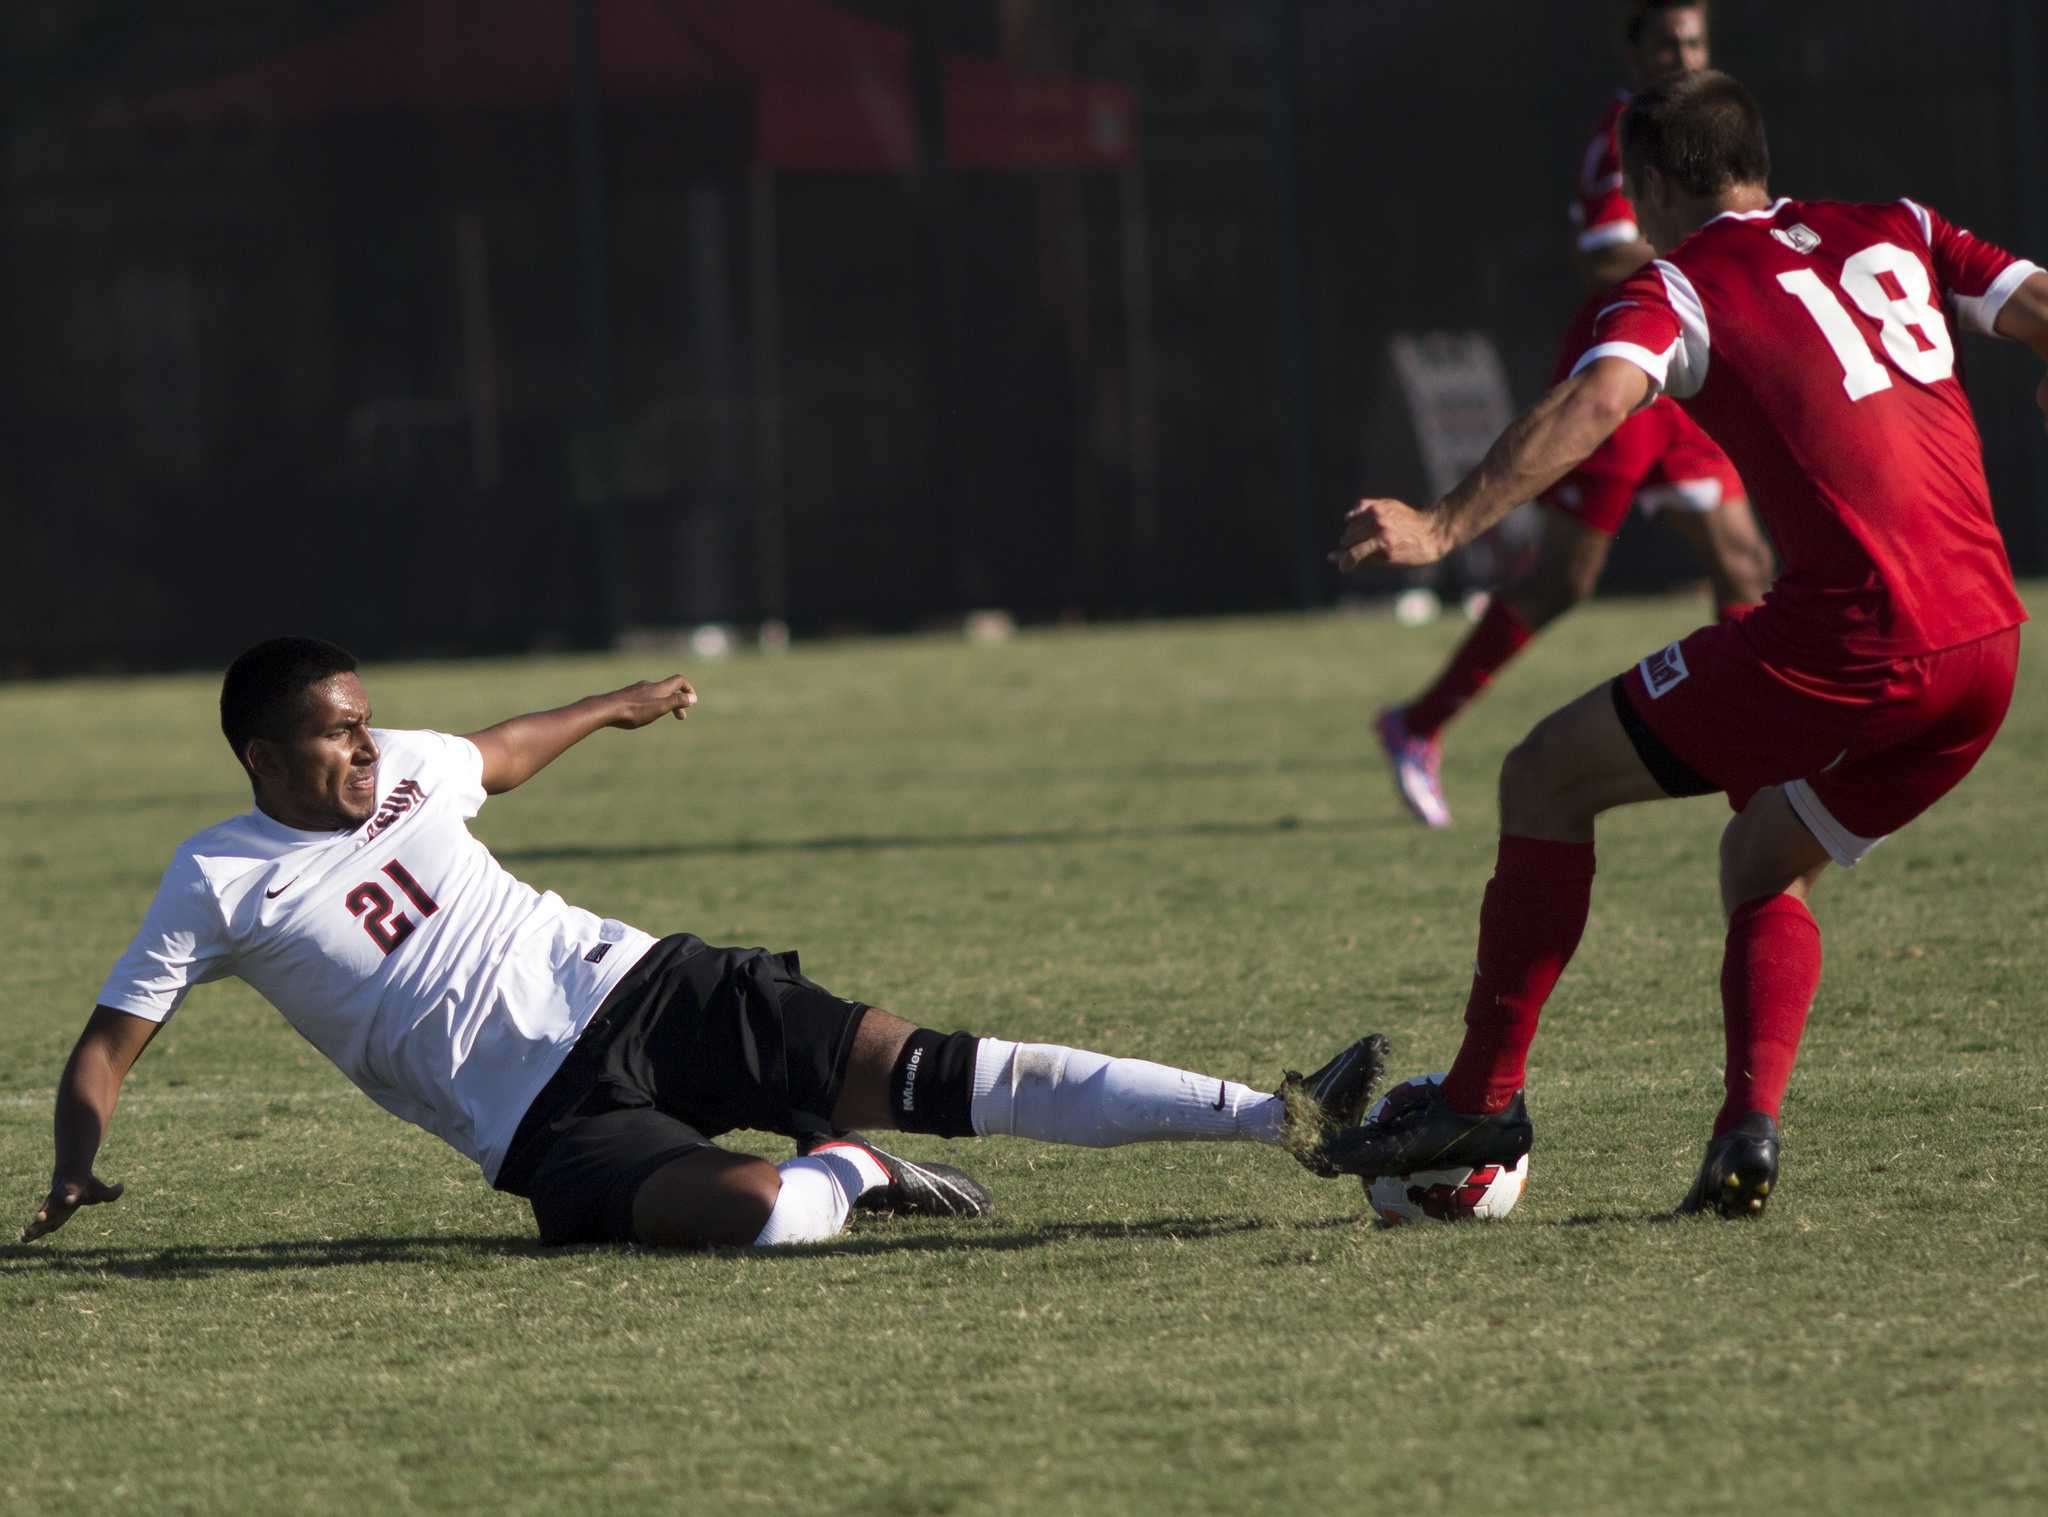 ICYMI: Men's Soccer: Matadors' defense falters, lose to Mavericks 4-1.